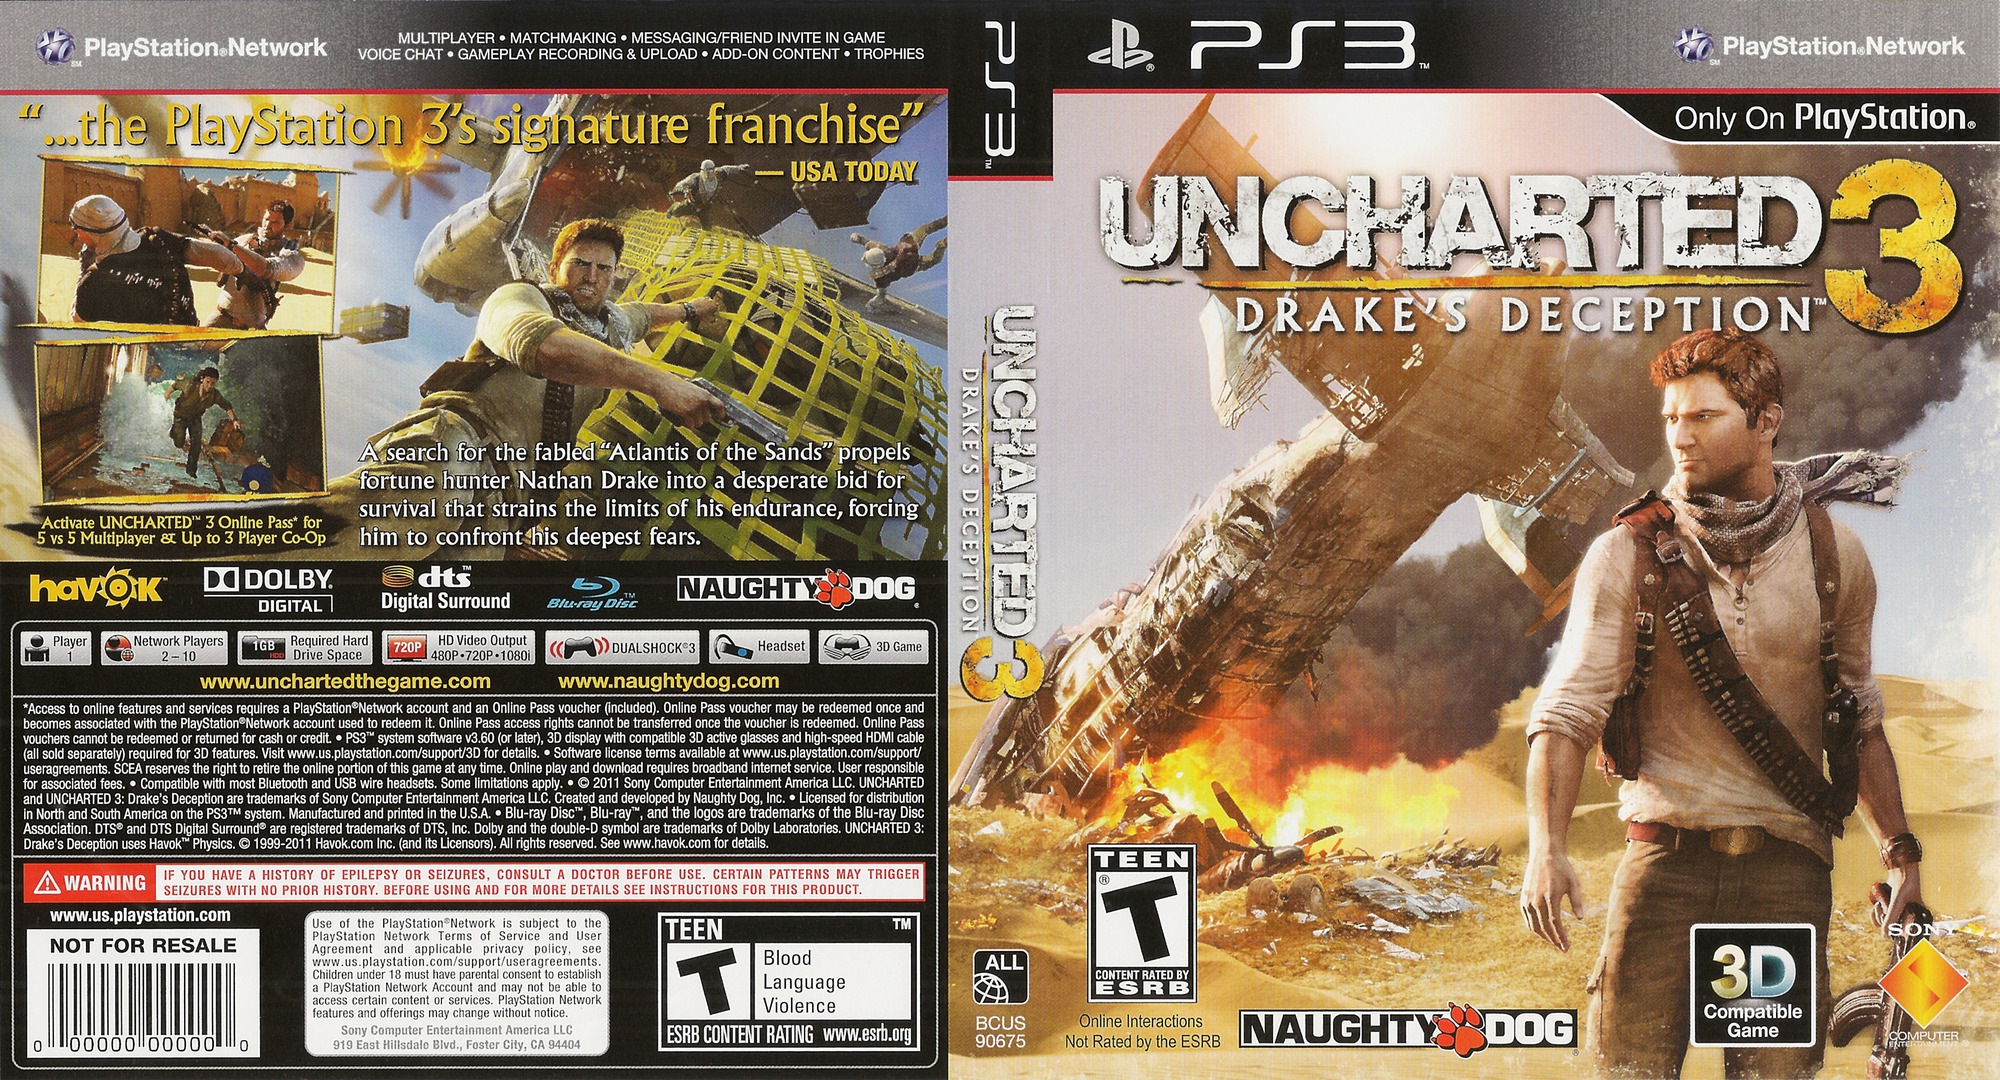 Uncharted 3: Drake's Deception PS3 coverfullHQ (BCUS90675)